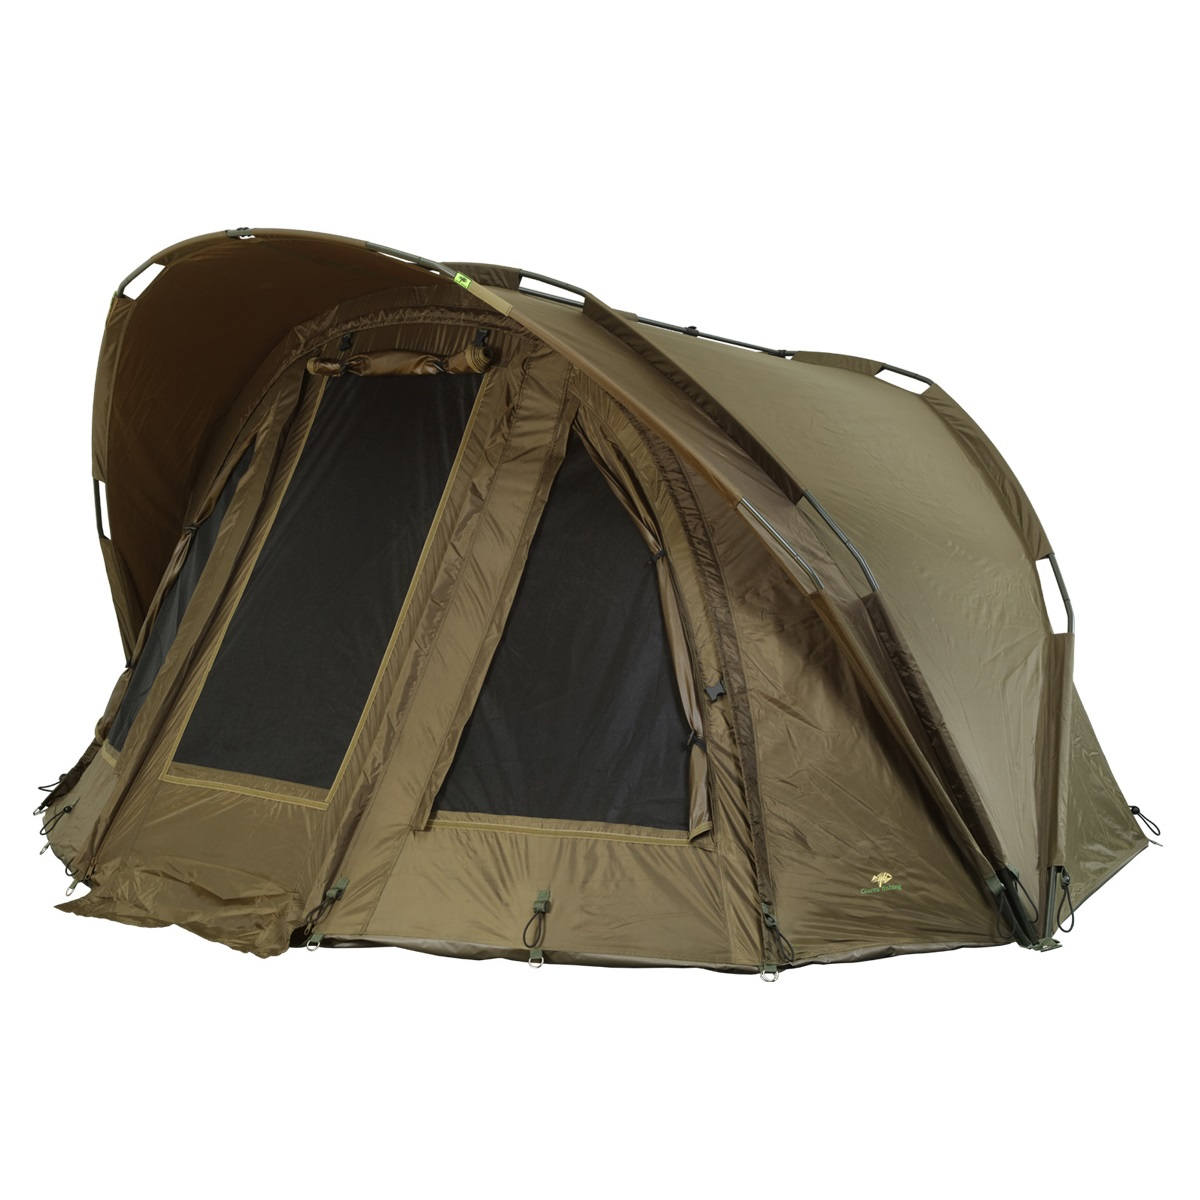 GIANTS FISHING - Bivak Gaube Bivvy 2man